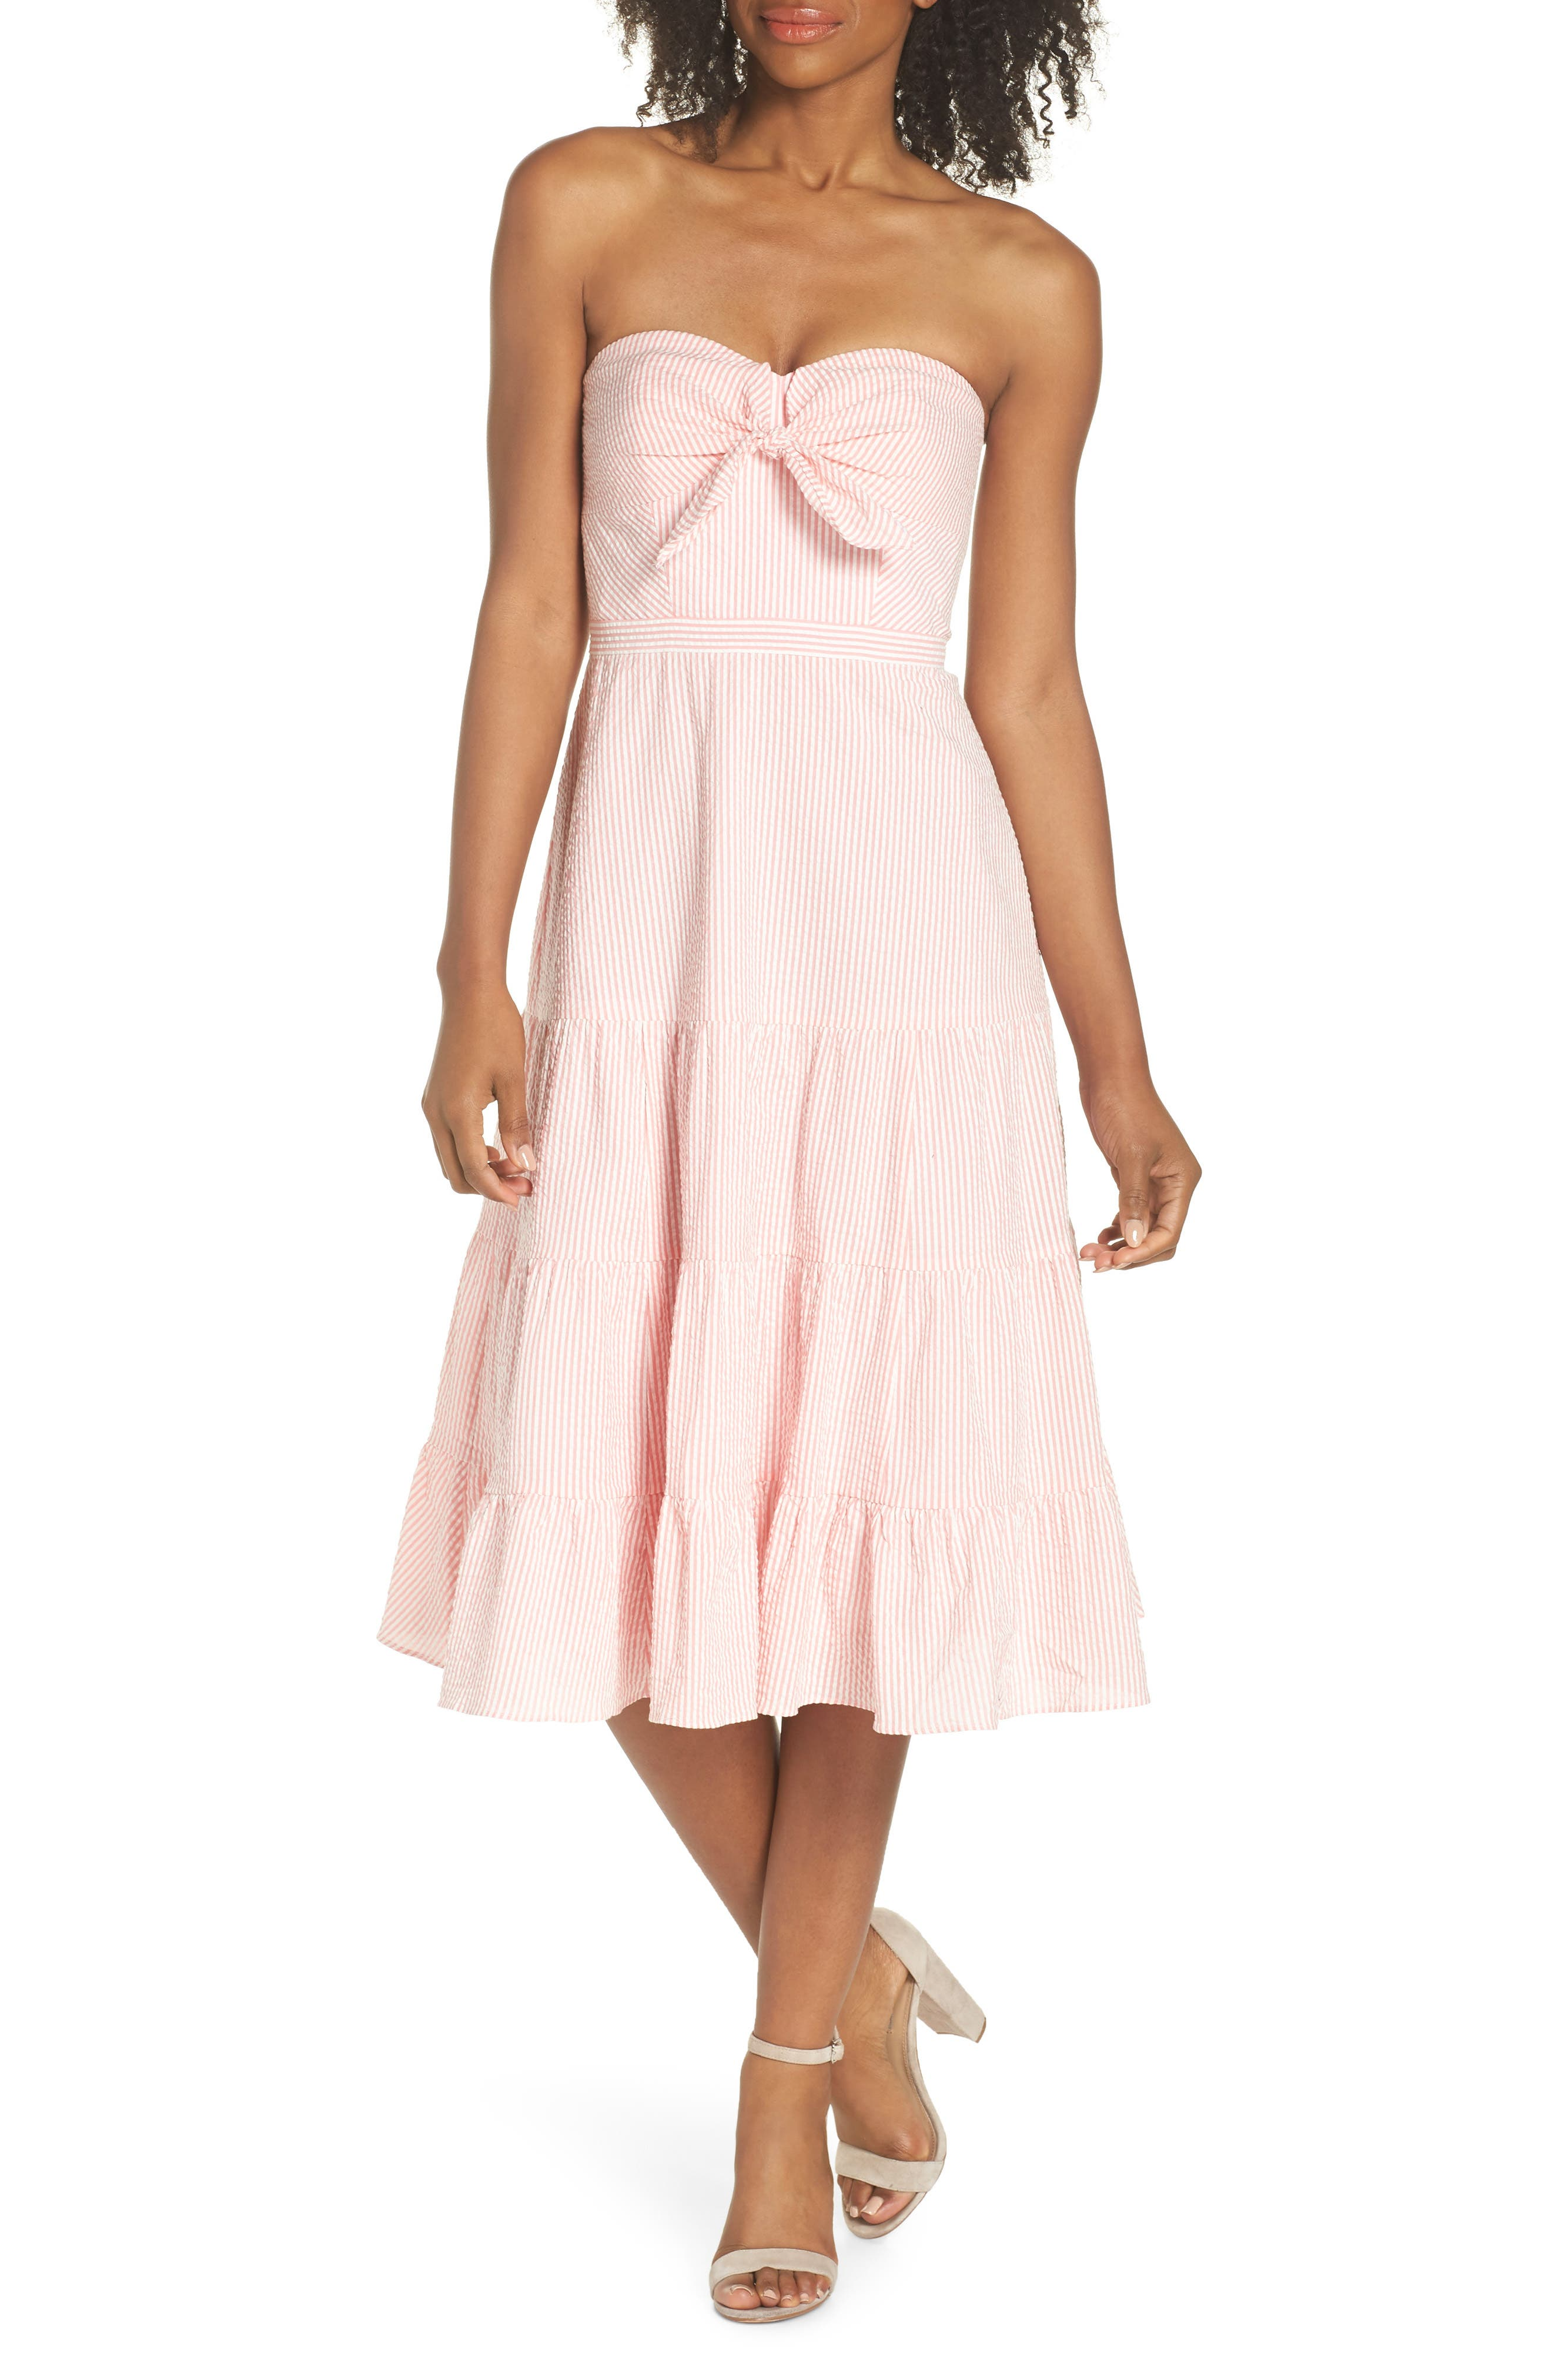 J.Crew Tie Front Strapless Dress